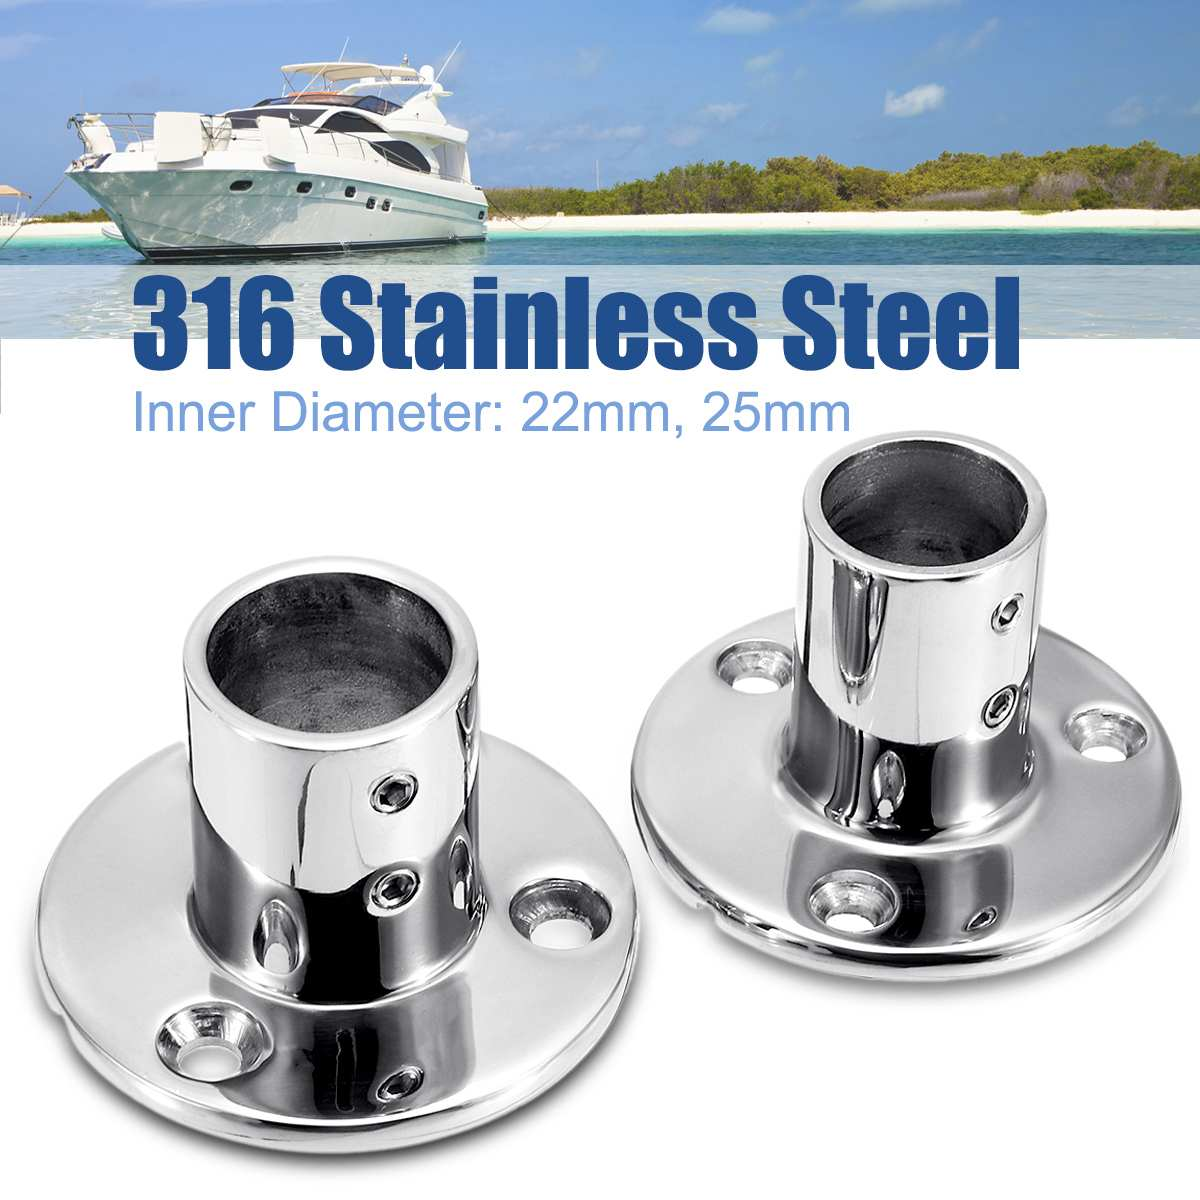 316 Stainless Steel Boat Tube Pipe Base Marine 90° Railing Handrail Pipe Base Fitting Support Durable Rust-resistant Reusable